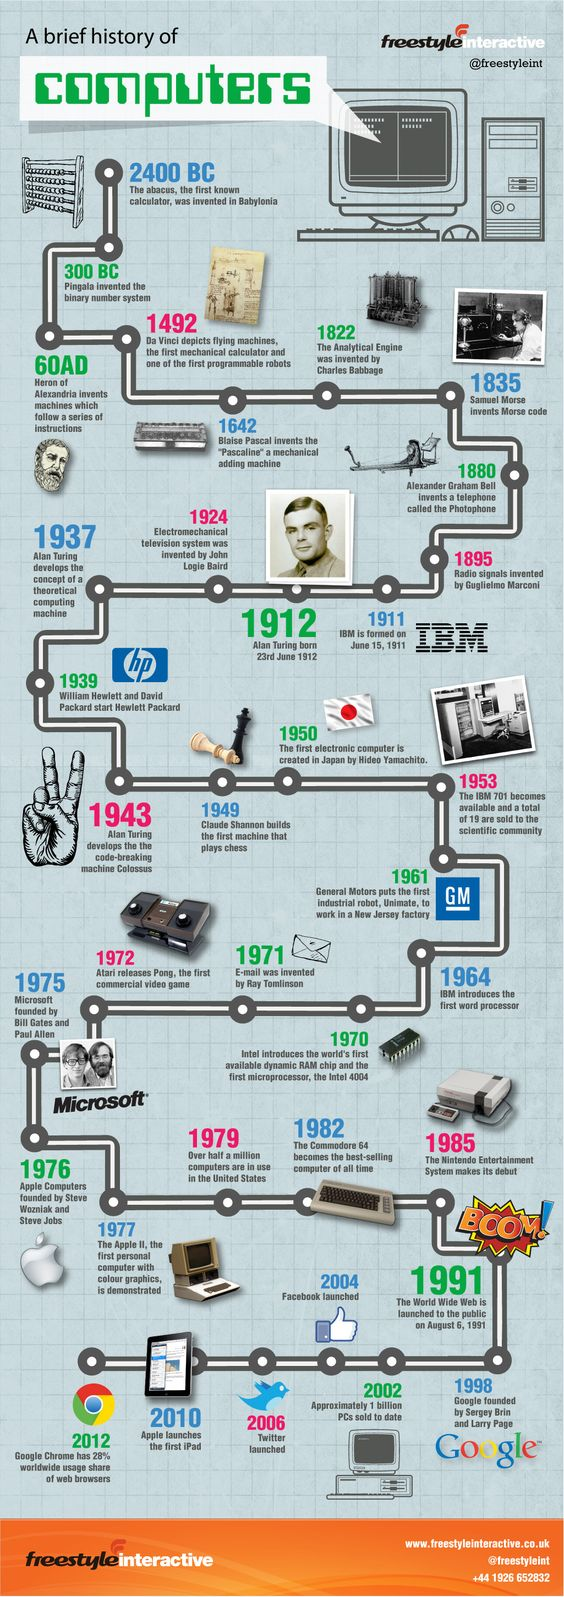 Interactive Infographic on the History of Computers - stretching from 2400 BC and the Abacus to Binary and Da Vinci's inventiveness, the birth of Turing in 1912 and to what we know as the major players of today Microsoft, Apple and a brief mention of the Commodore 64.: